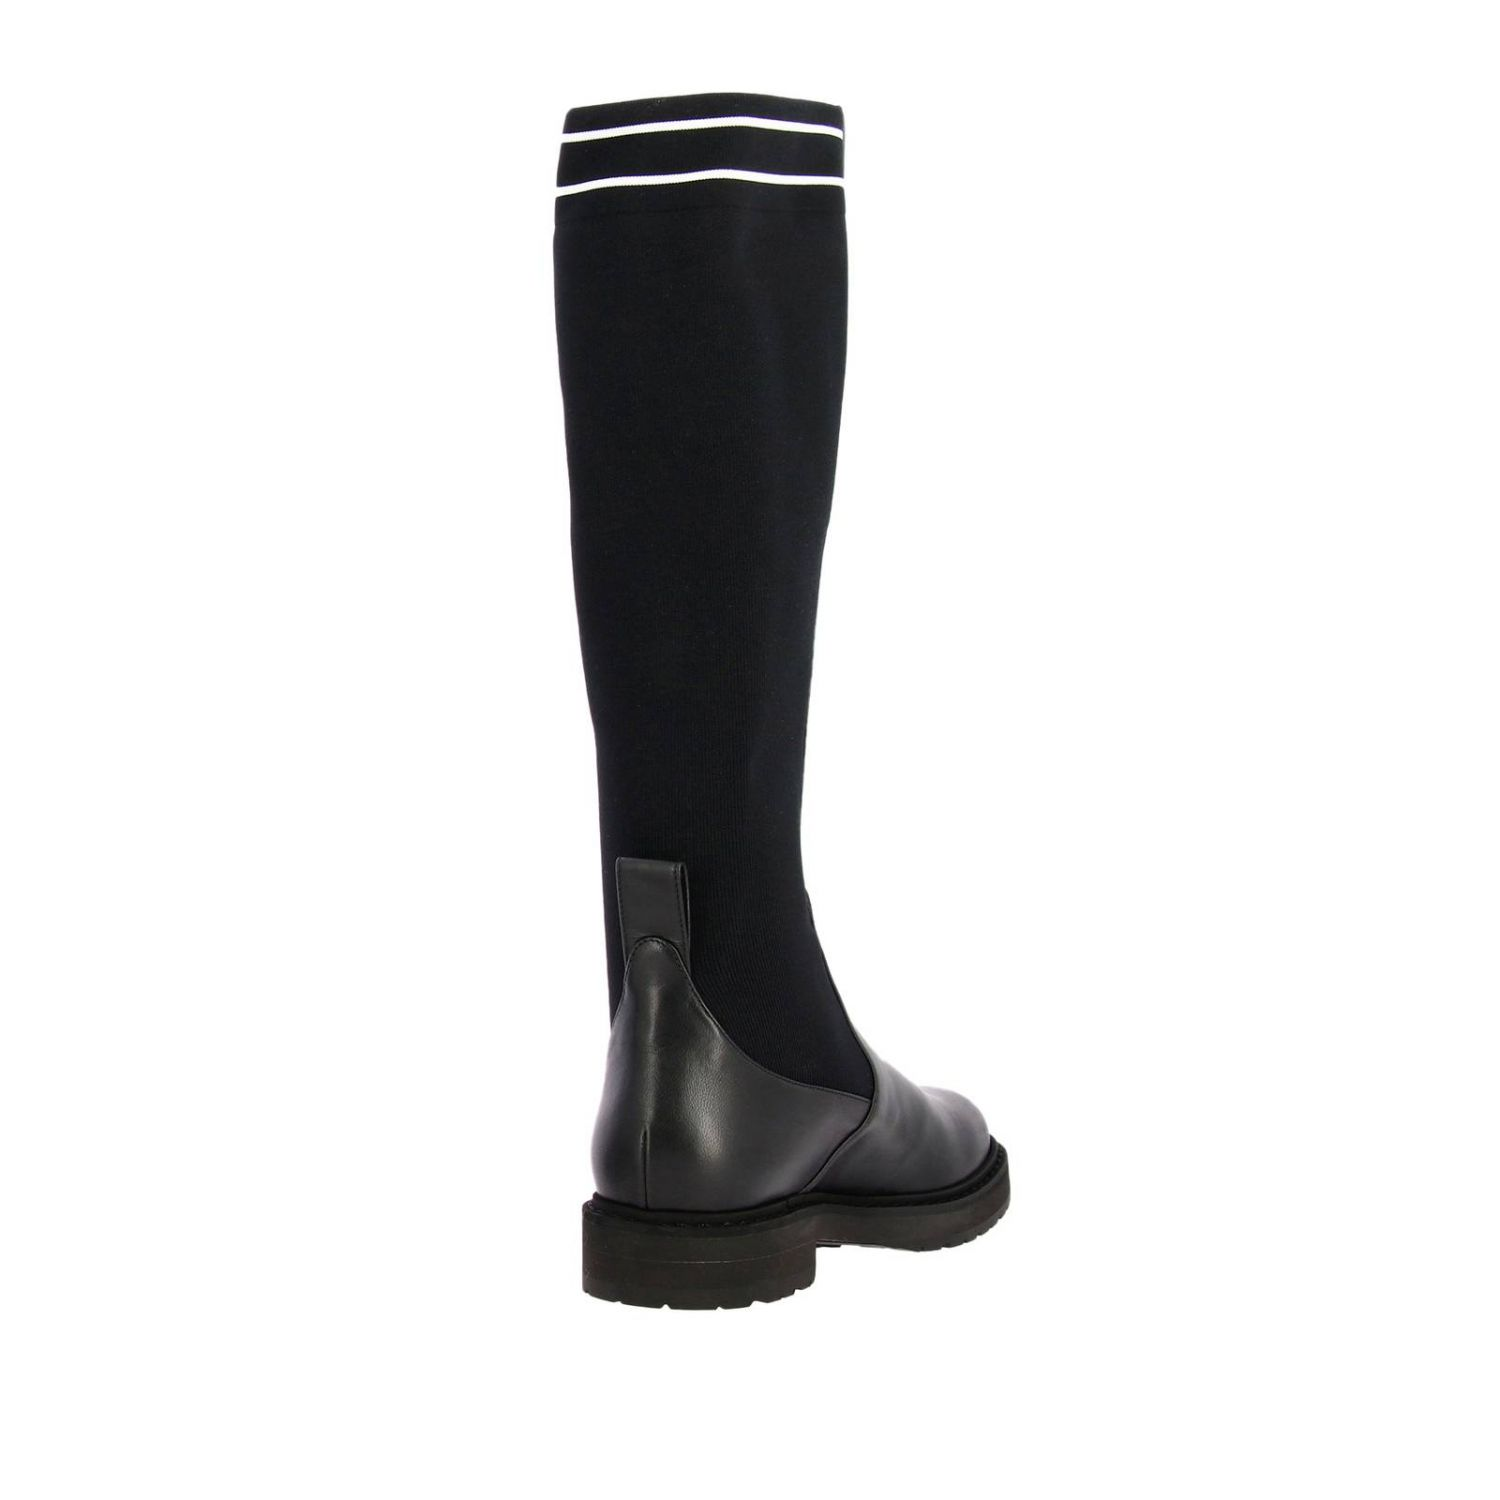 High boots in leather and ribbed knit with fendi logo and rubber sole black 4